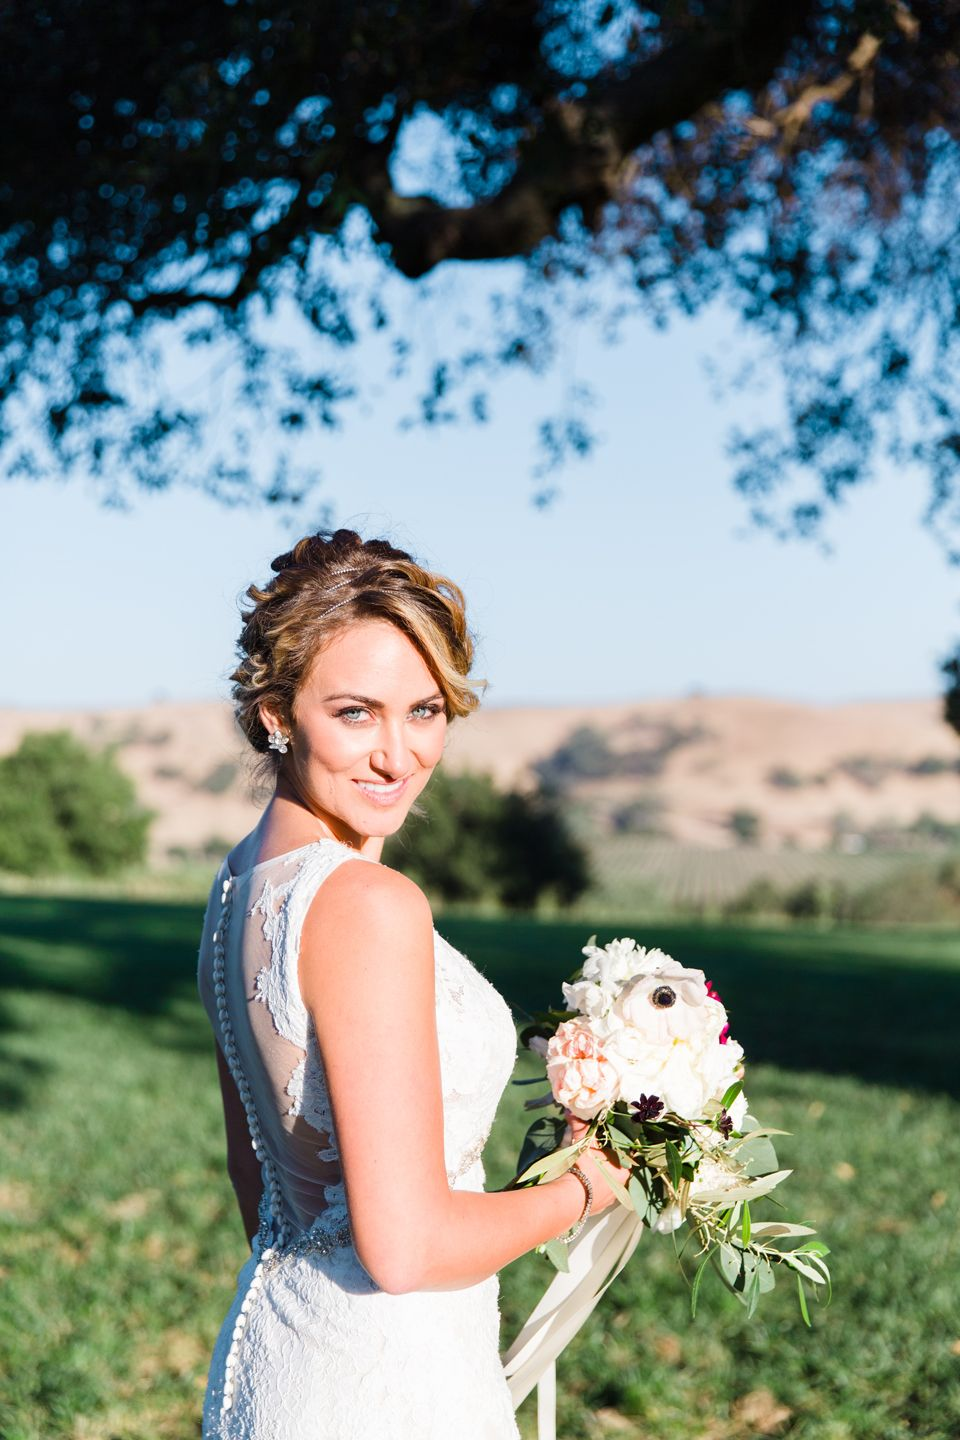 Bridal pose with flowers looking over the Los Olivos hillside at the Firestone Vineyard and Winery.